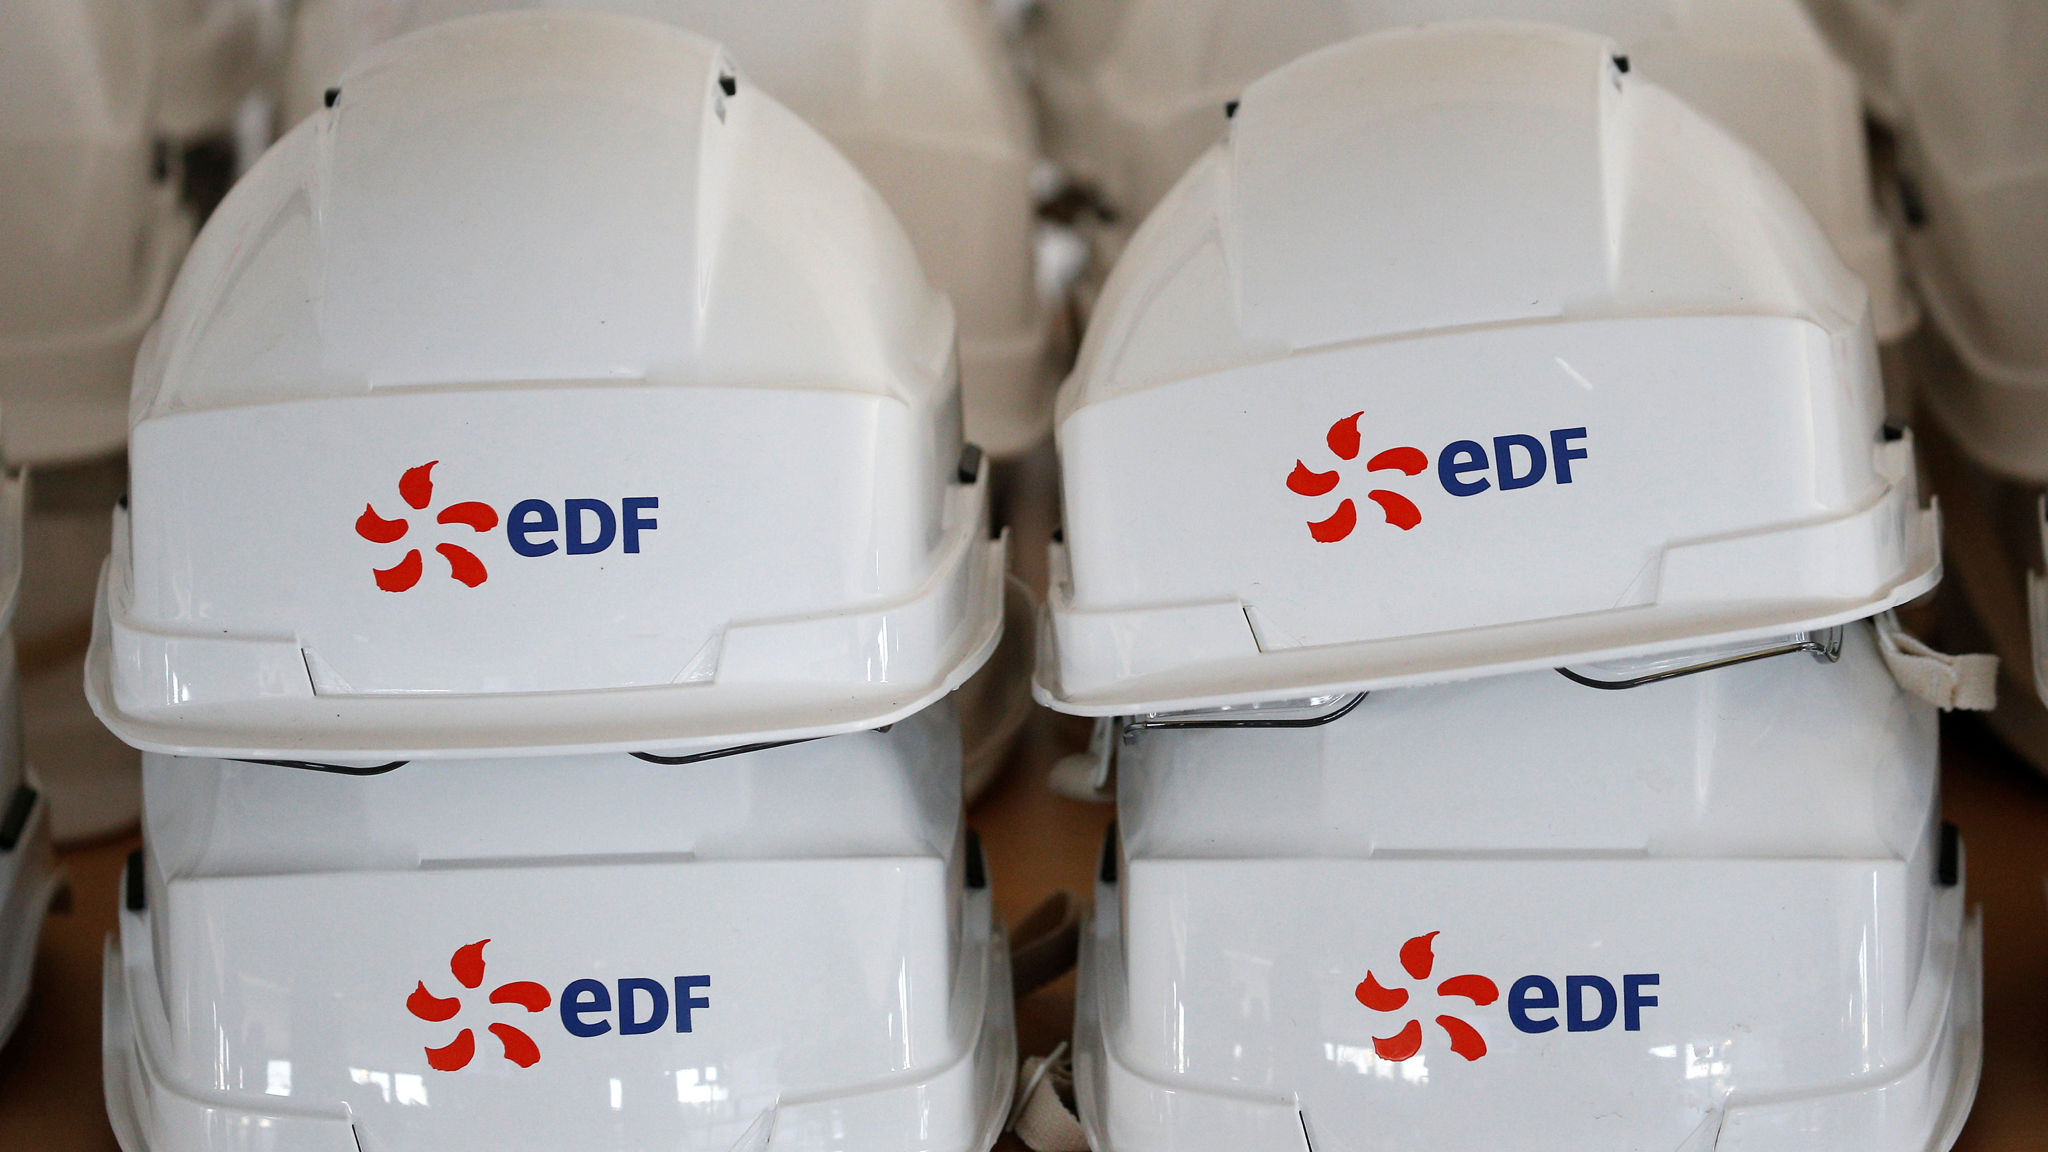 EDF shares tumble on reports of nuclear component issues